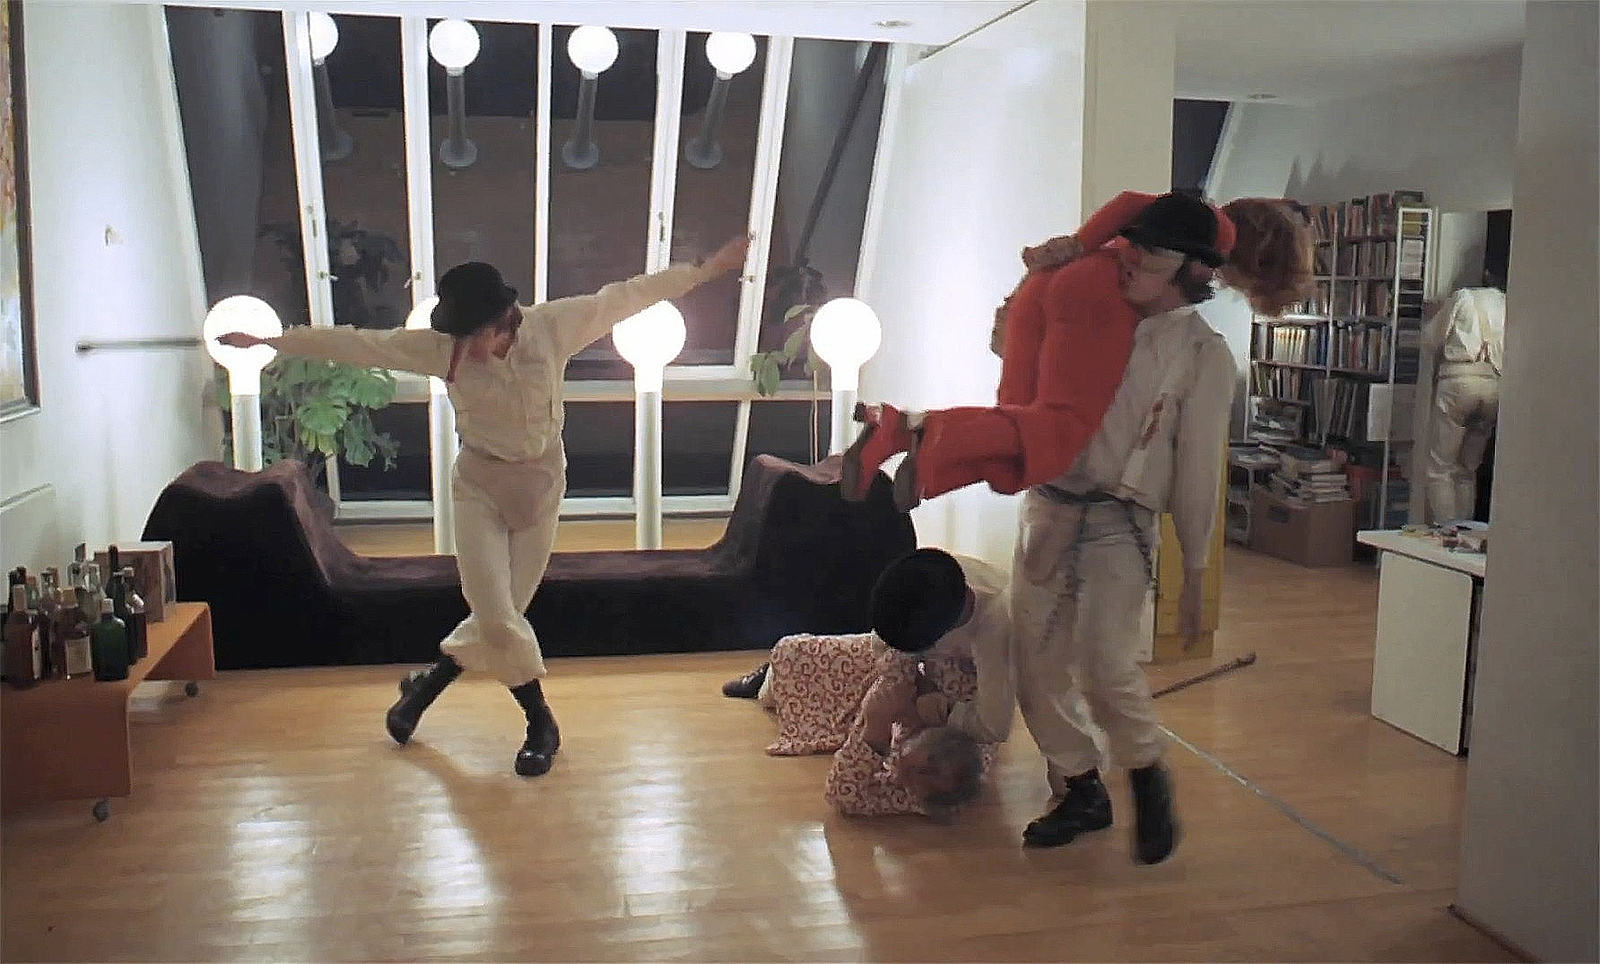 Still from the Jaffe House scene in A Clockwork Orange